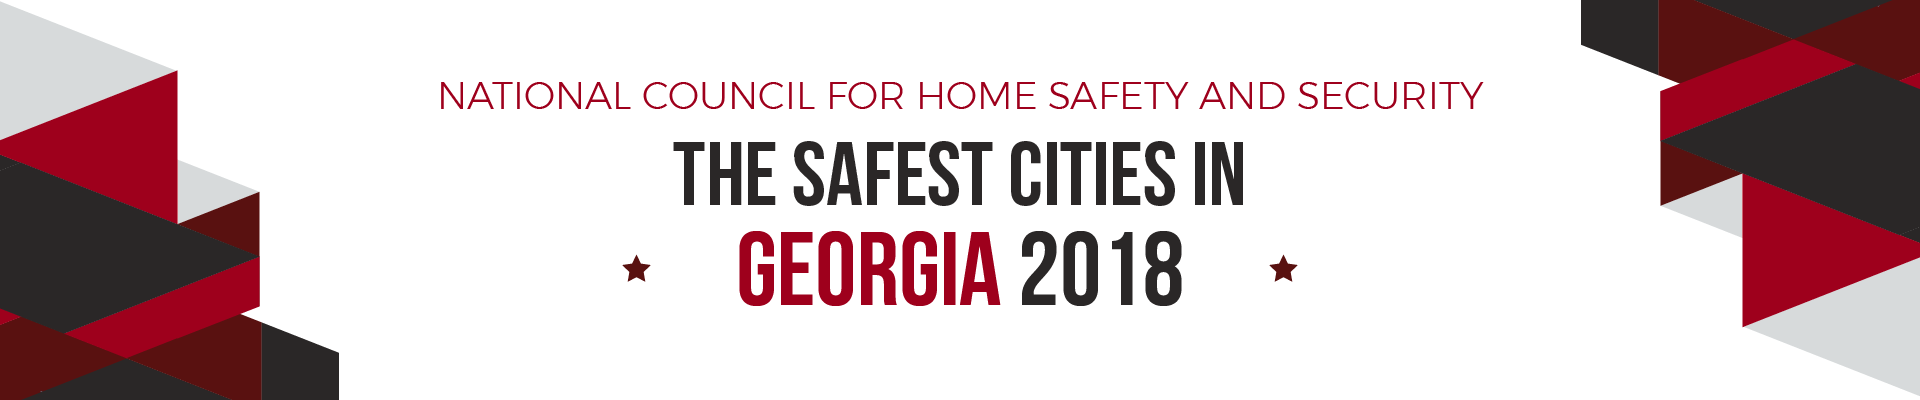 Safest Cities in Alabama